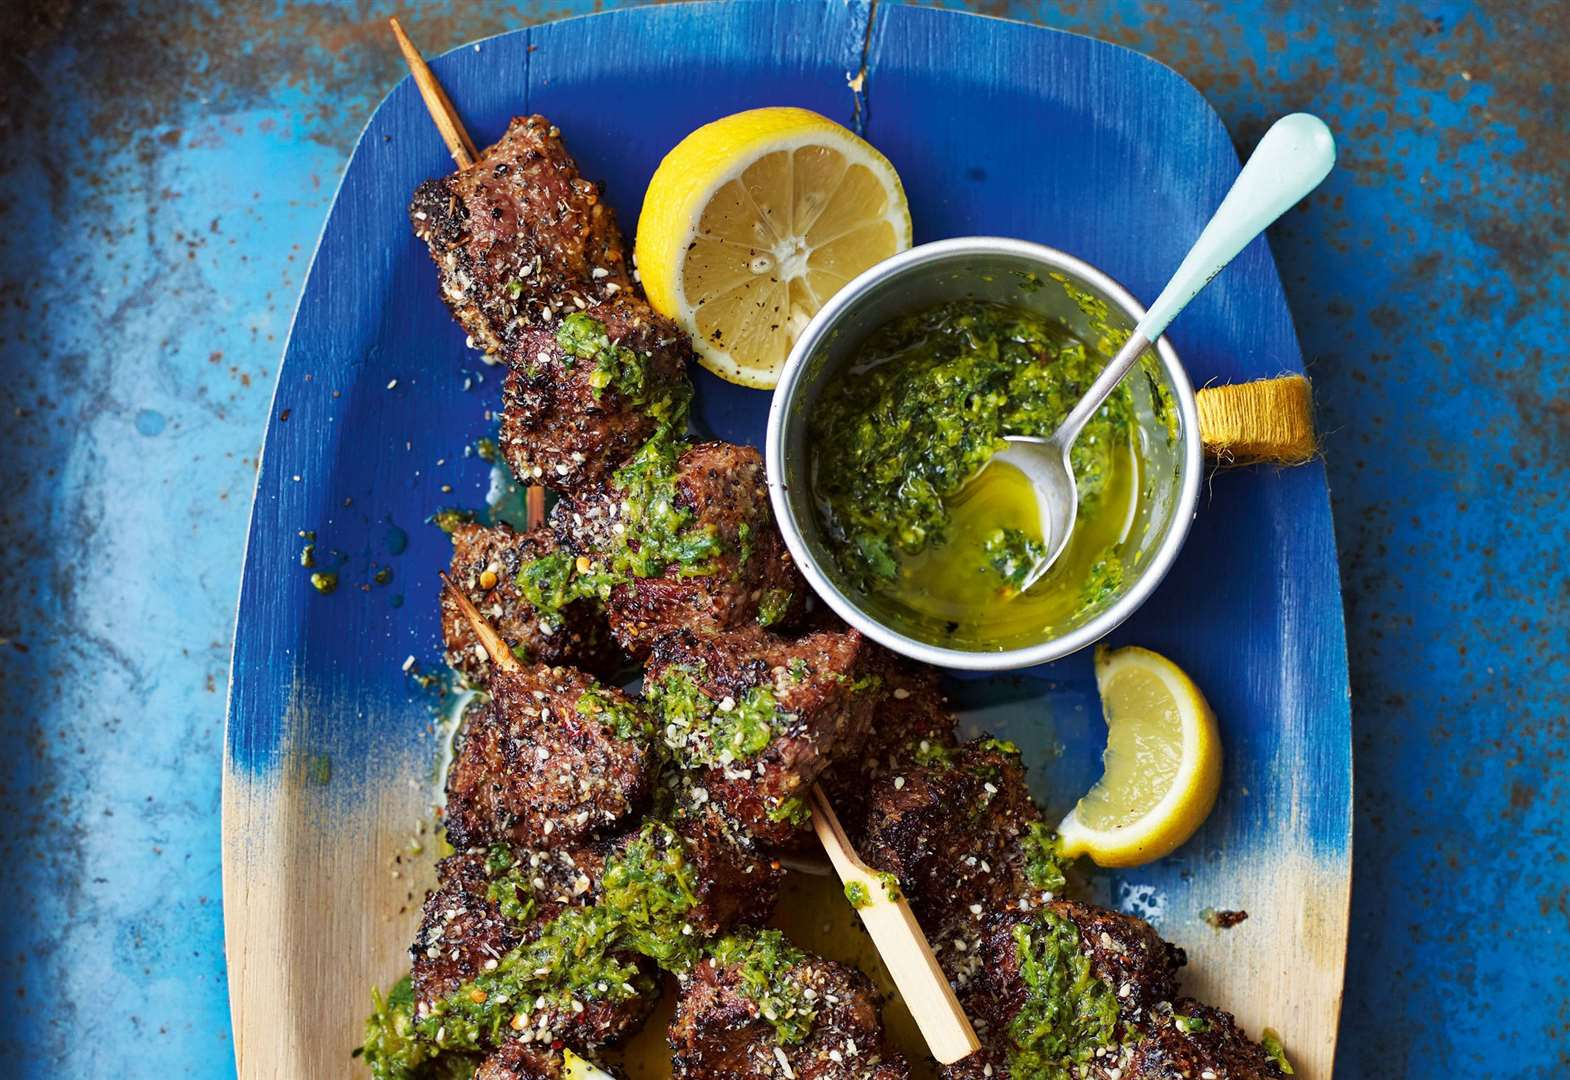 Recipe of the week: Ainsley Harriott's poppy and coconut beef kebabs with roasted chilli salsa